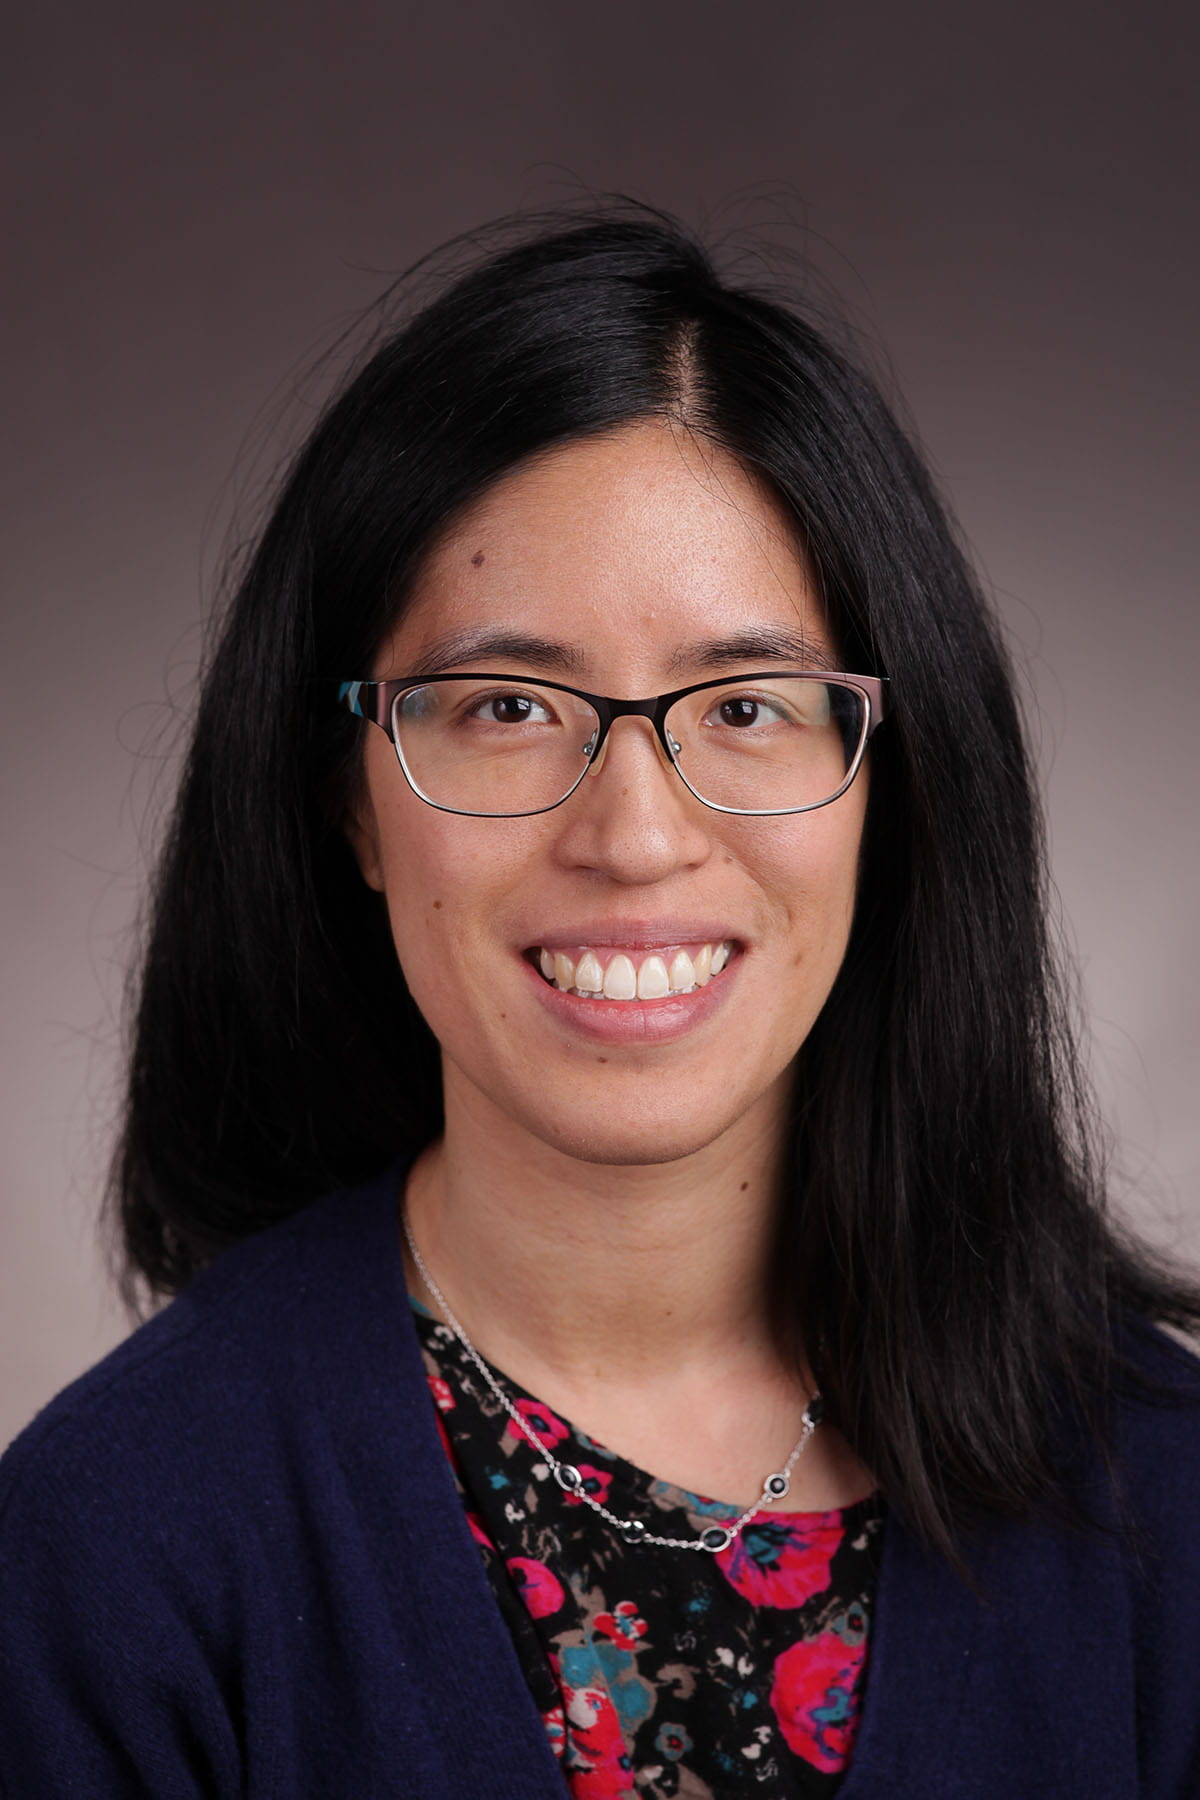 A photo of Janet Chuang.